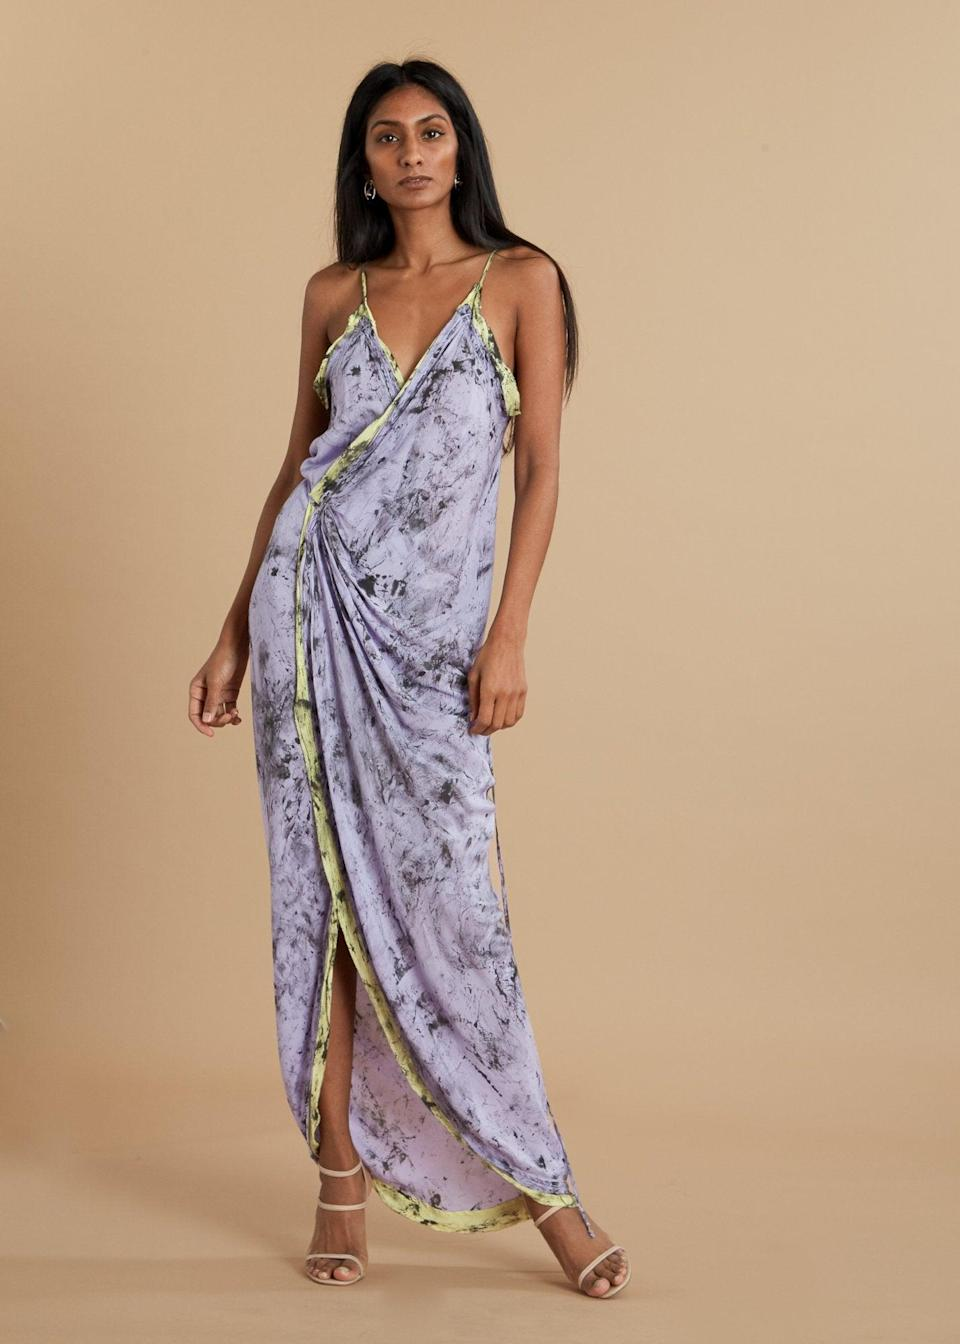 """<br><br><strong>W35T</strong> Purple Hibiscus Wrap Dress, $, available at <a href=""""https://go.skimresources.com/?id=30283X879131&url=https%3A%2F%2Fwww.thefolklore.com%2Fcollections%2Fwomens-dresses-jumpsuits%2Fproducts%2Fw35t-purple-hibiscus-wrap-dress"""" rel=""""nofollow noopener"""" target=""""_blank"""" data-ylk=""""slk:The Folklore"""" class=""""link rapid-noclick-resp"""">The Folklore</a>"""